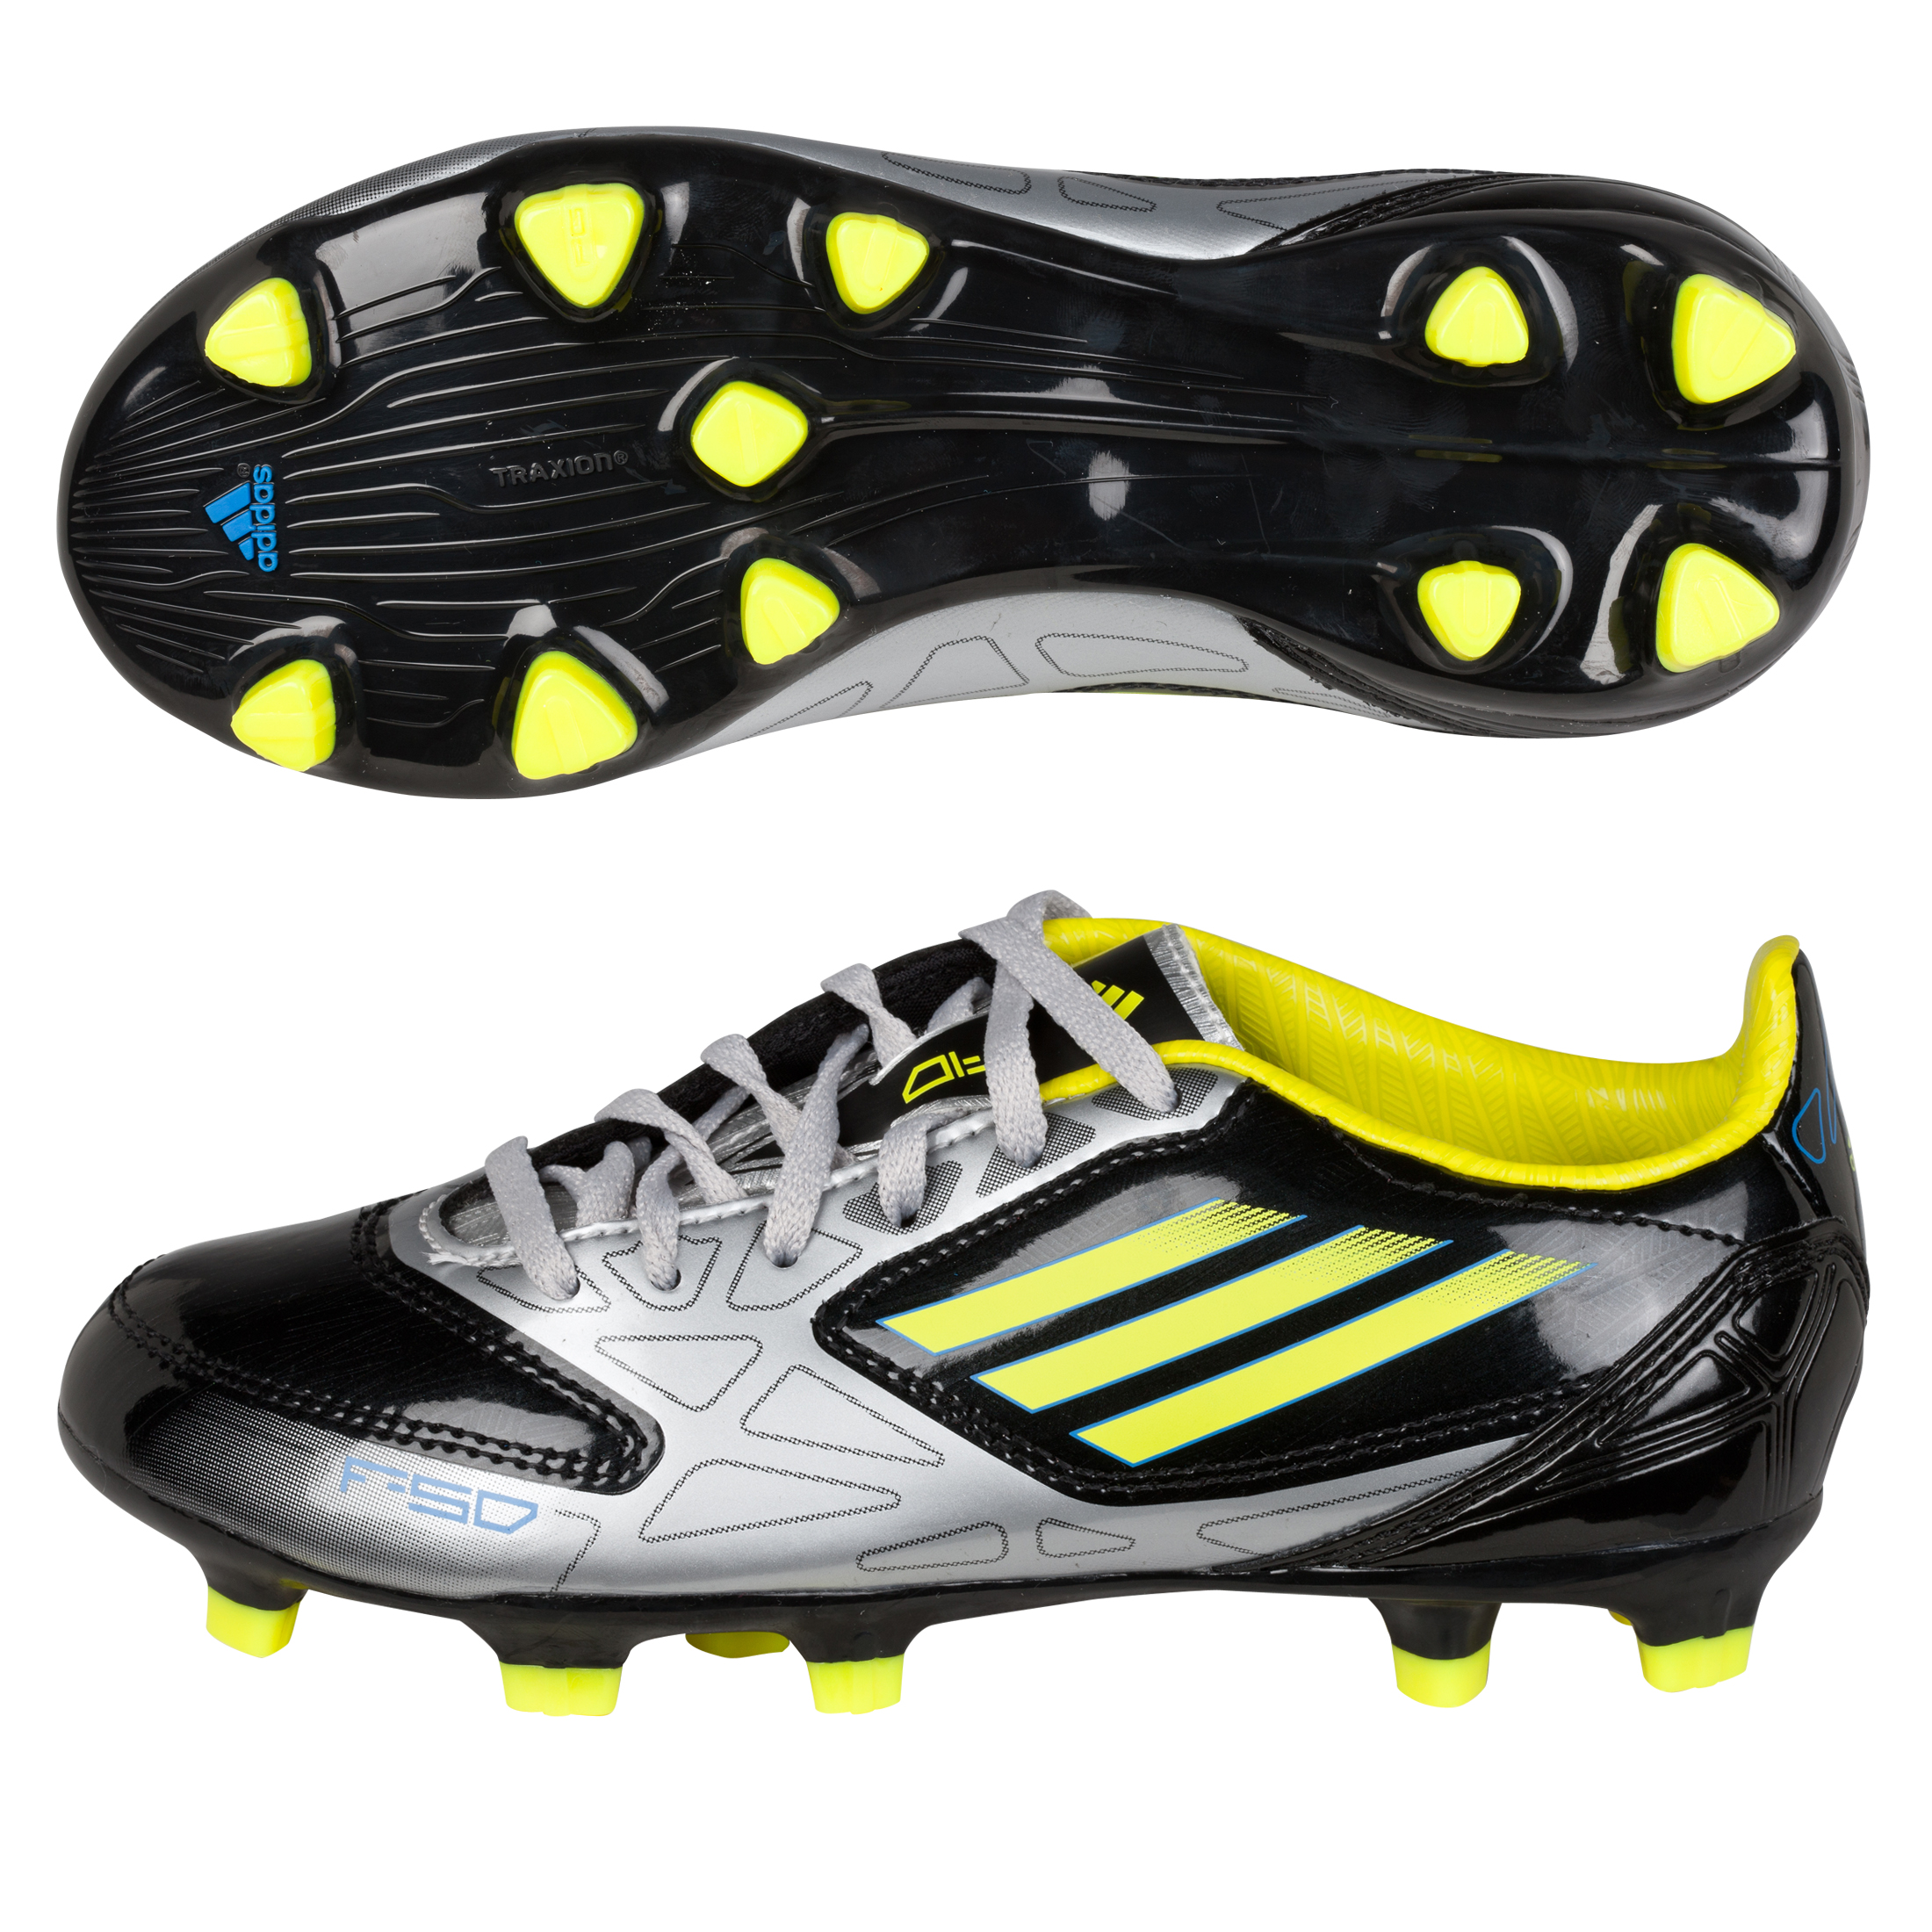 Adidas F10 TRX Firm Ground Football Boots - Black/Lab Lime/Metallic Silver - Kids